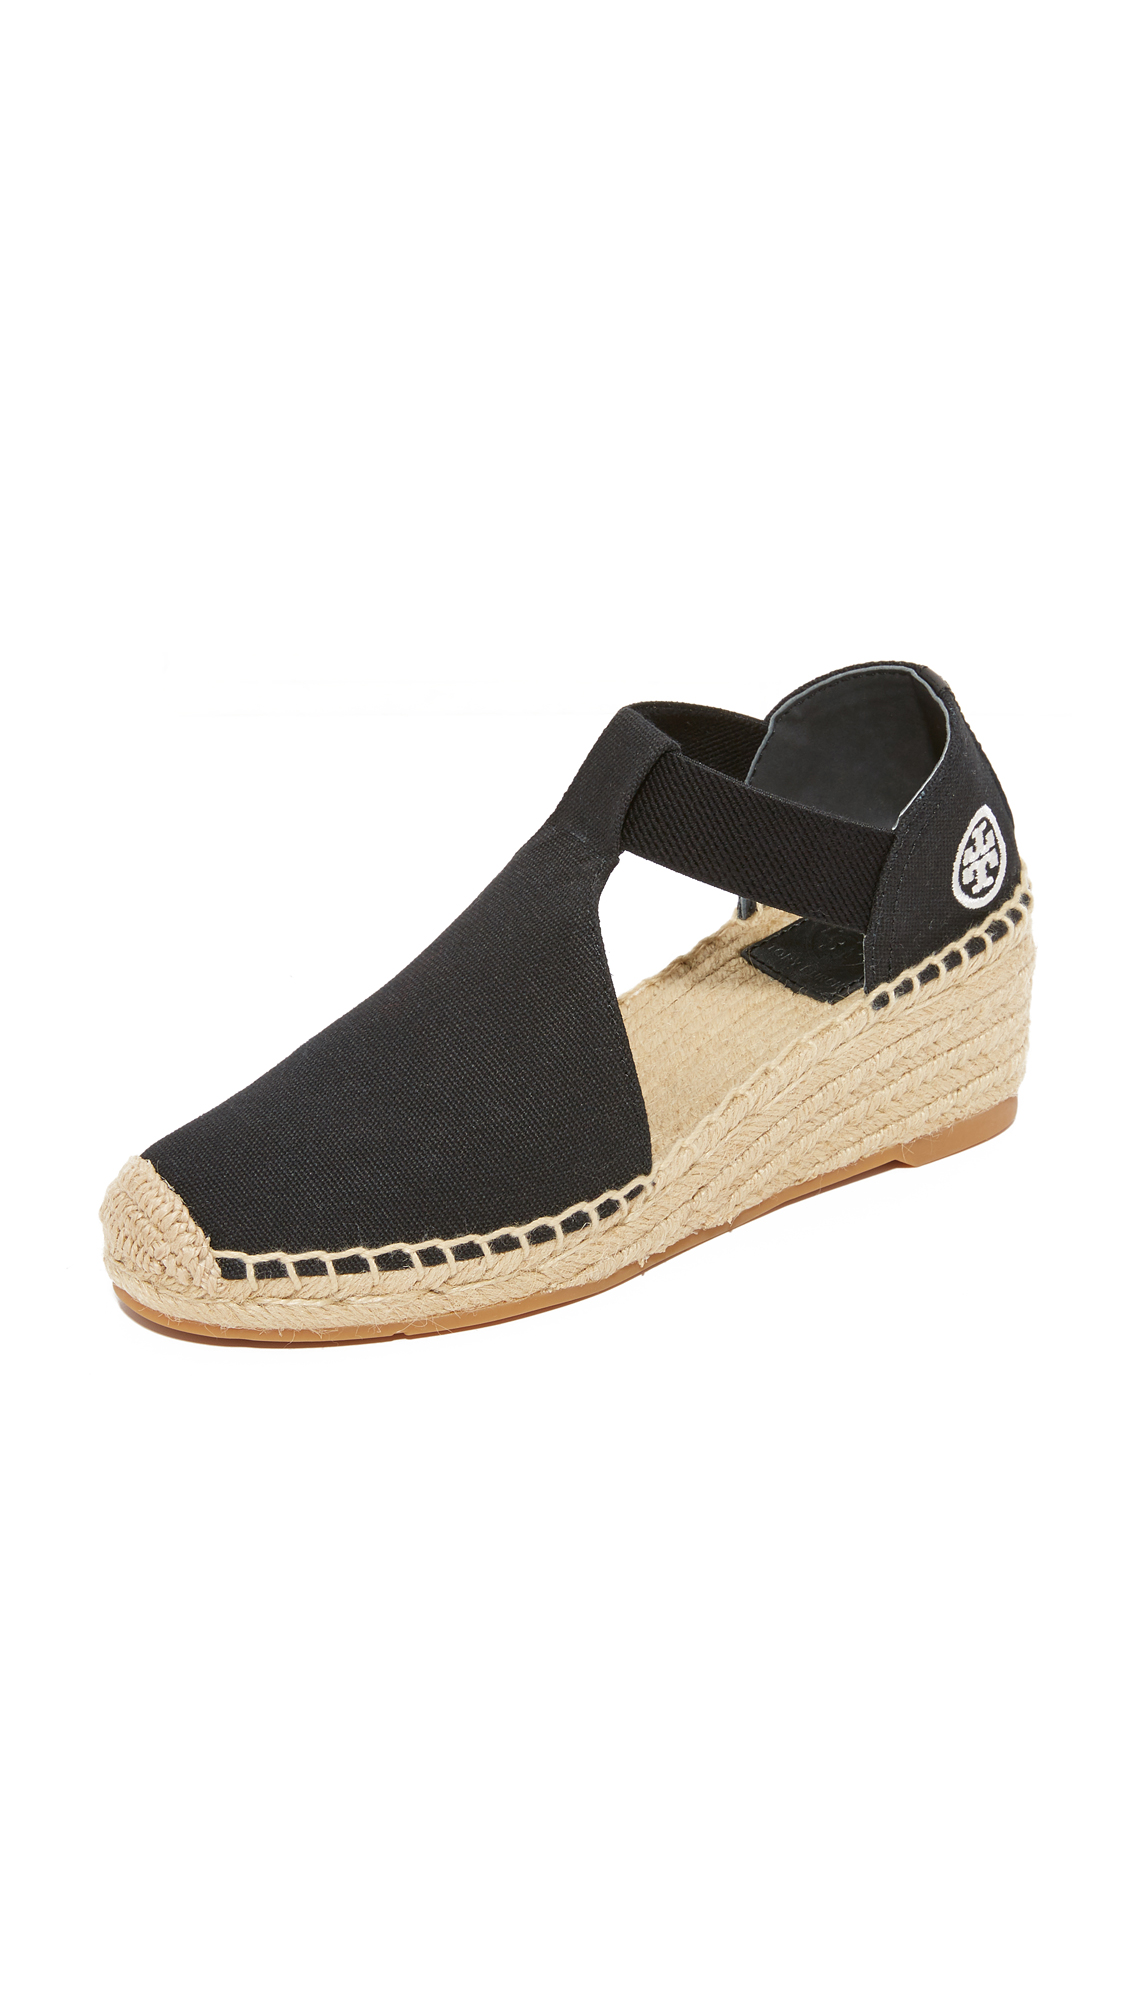 b4c95ba4ce2 Tory Burch Catalina 2 Wedge Espadrilles